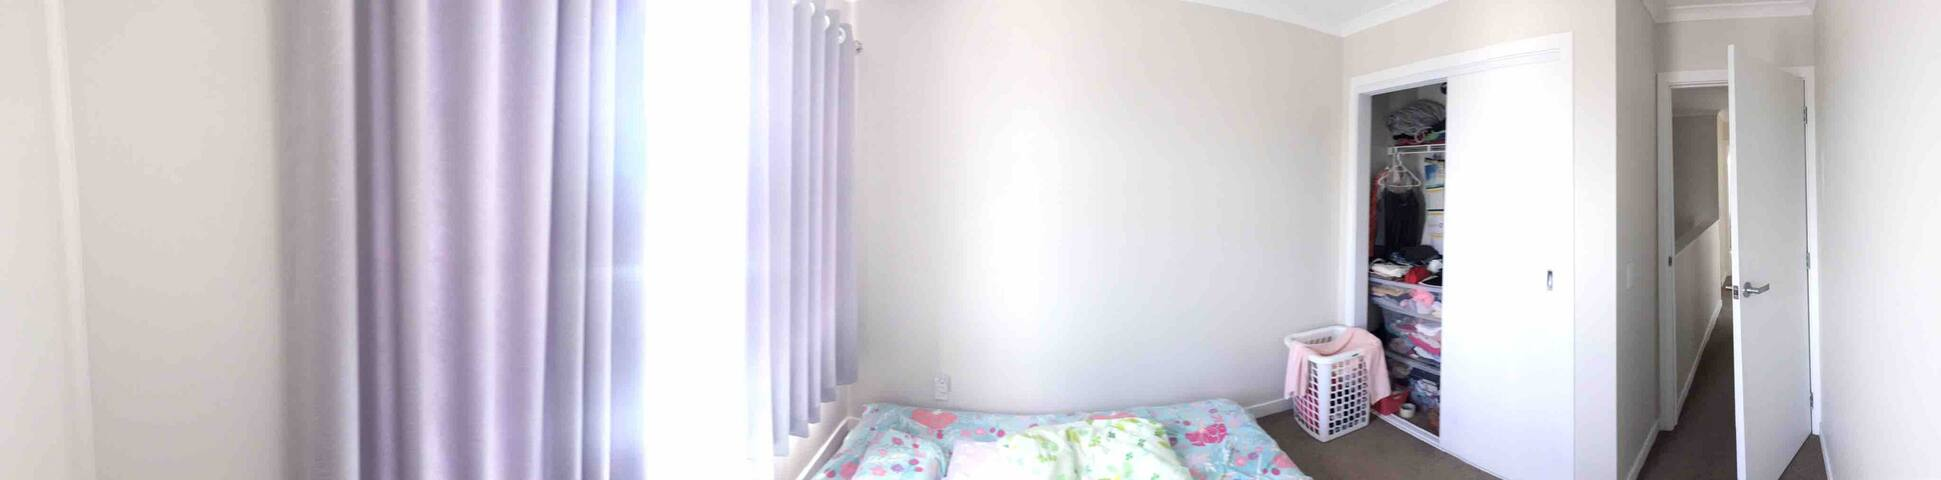 double room for short stay shared shower